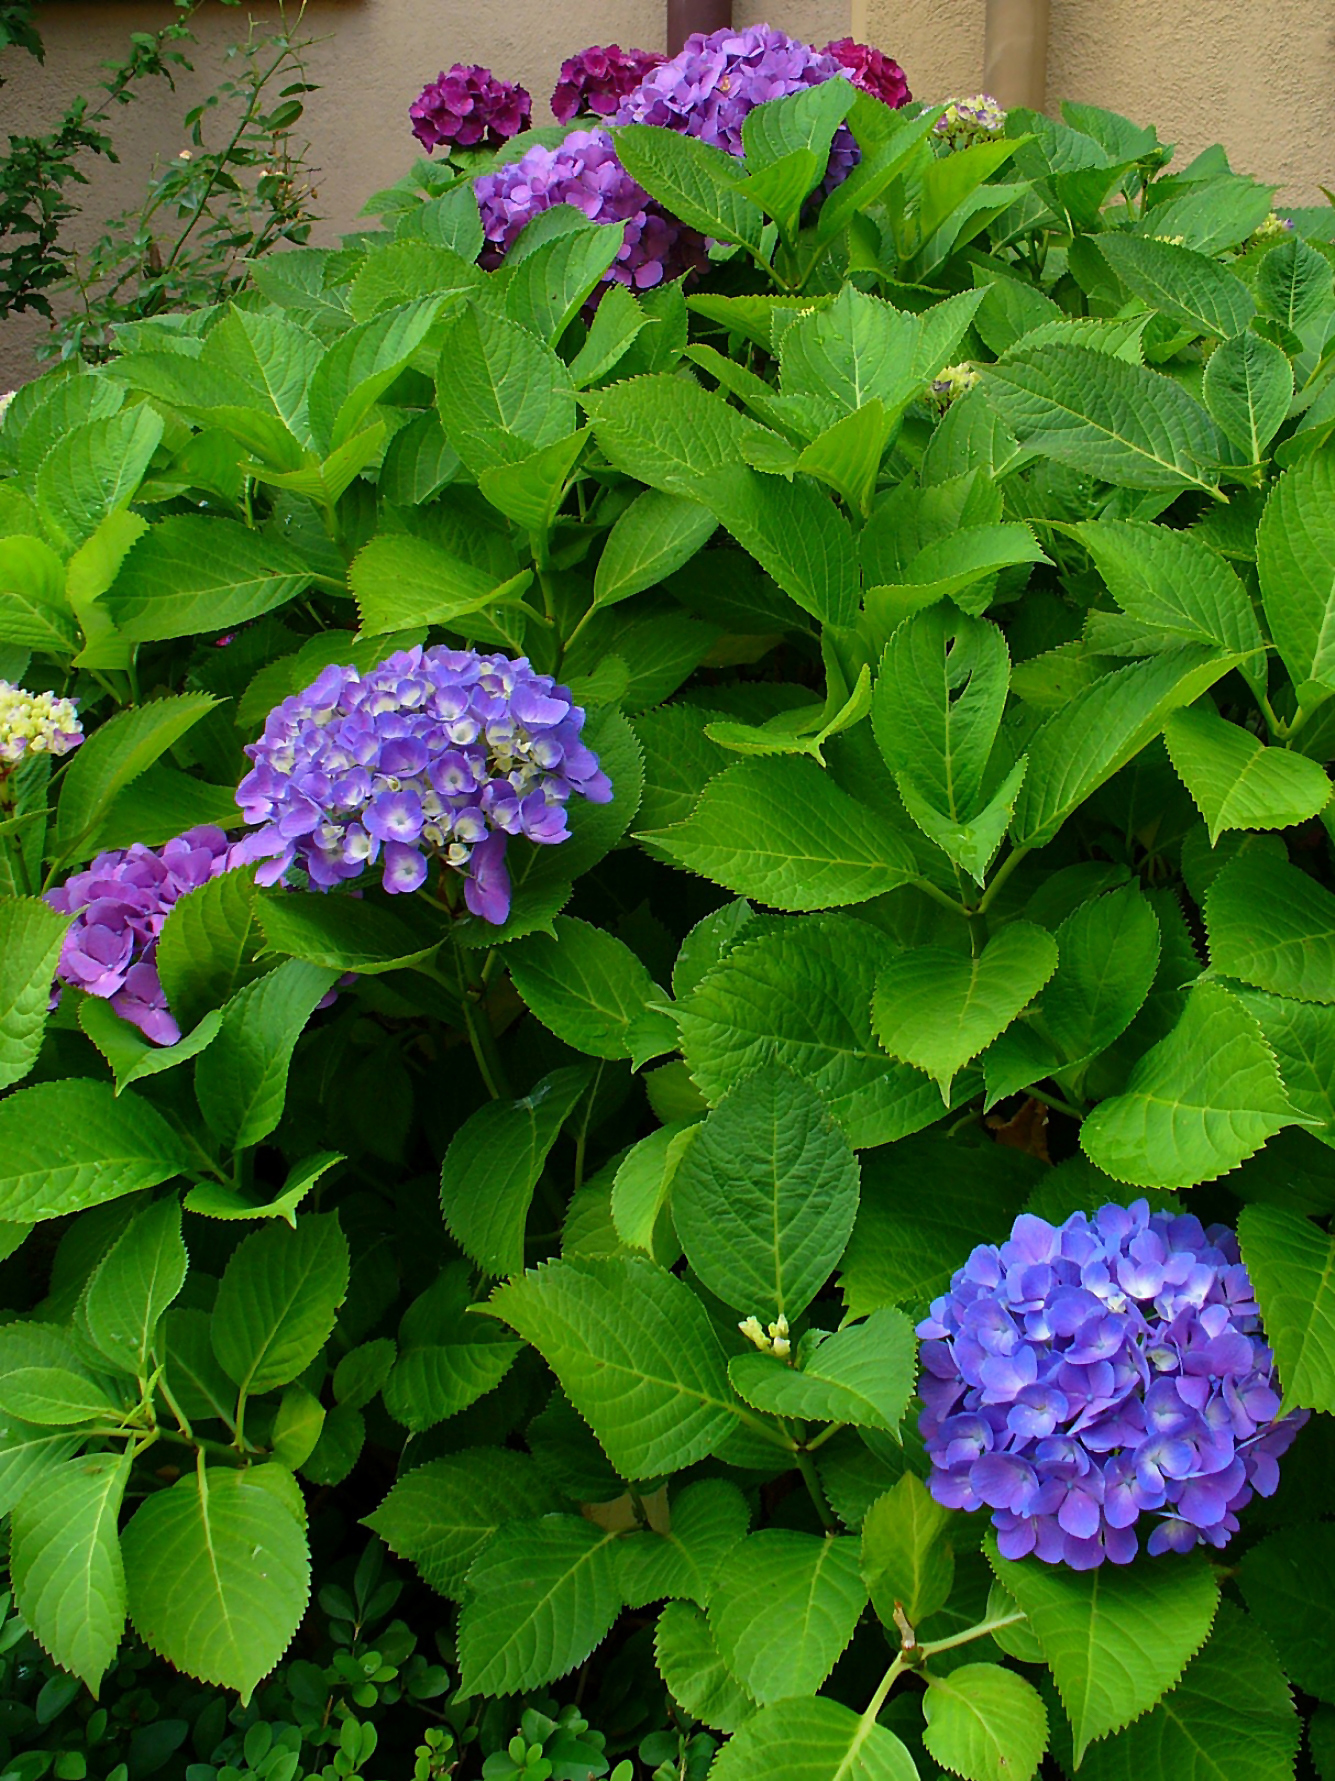 file hydrangea macrophylla 001 jpg wikimedia commons. Black Bedroom Furniture Sets. Home Design Ideas